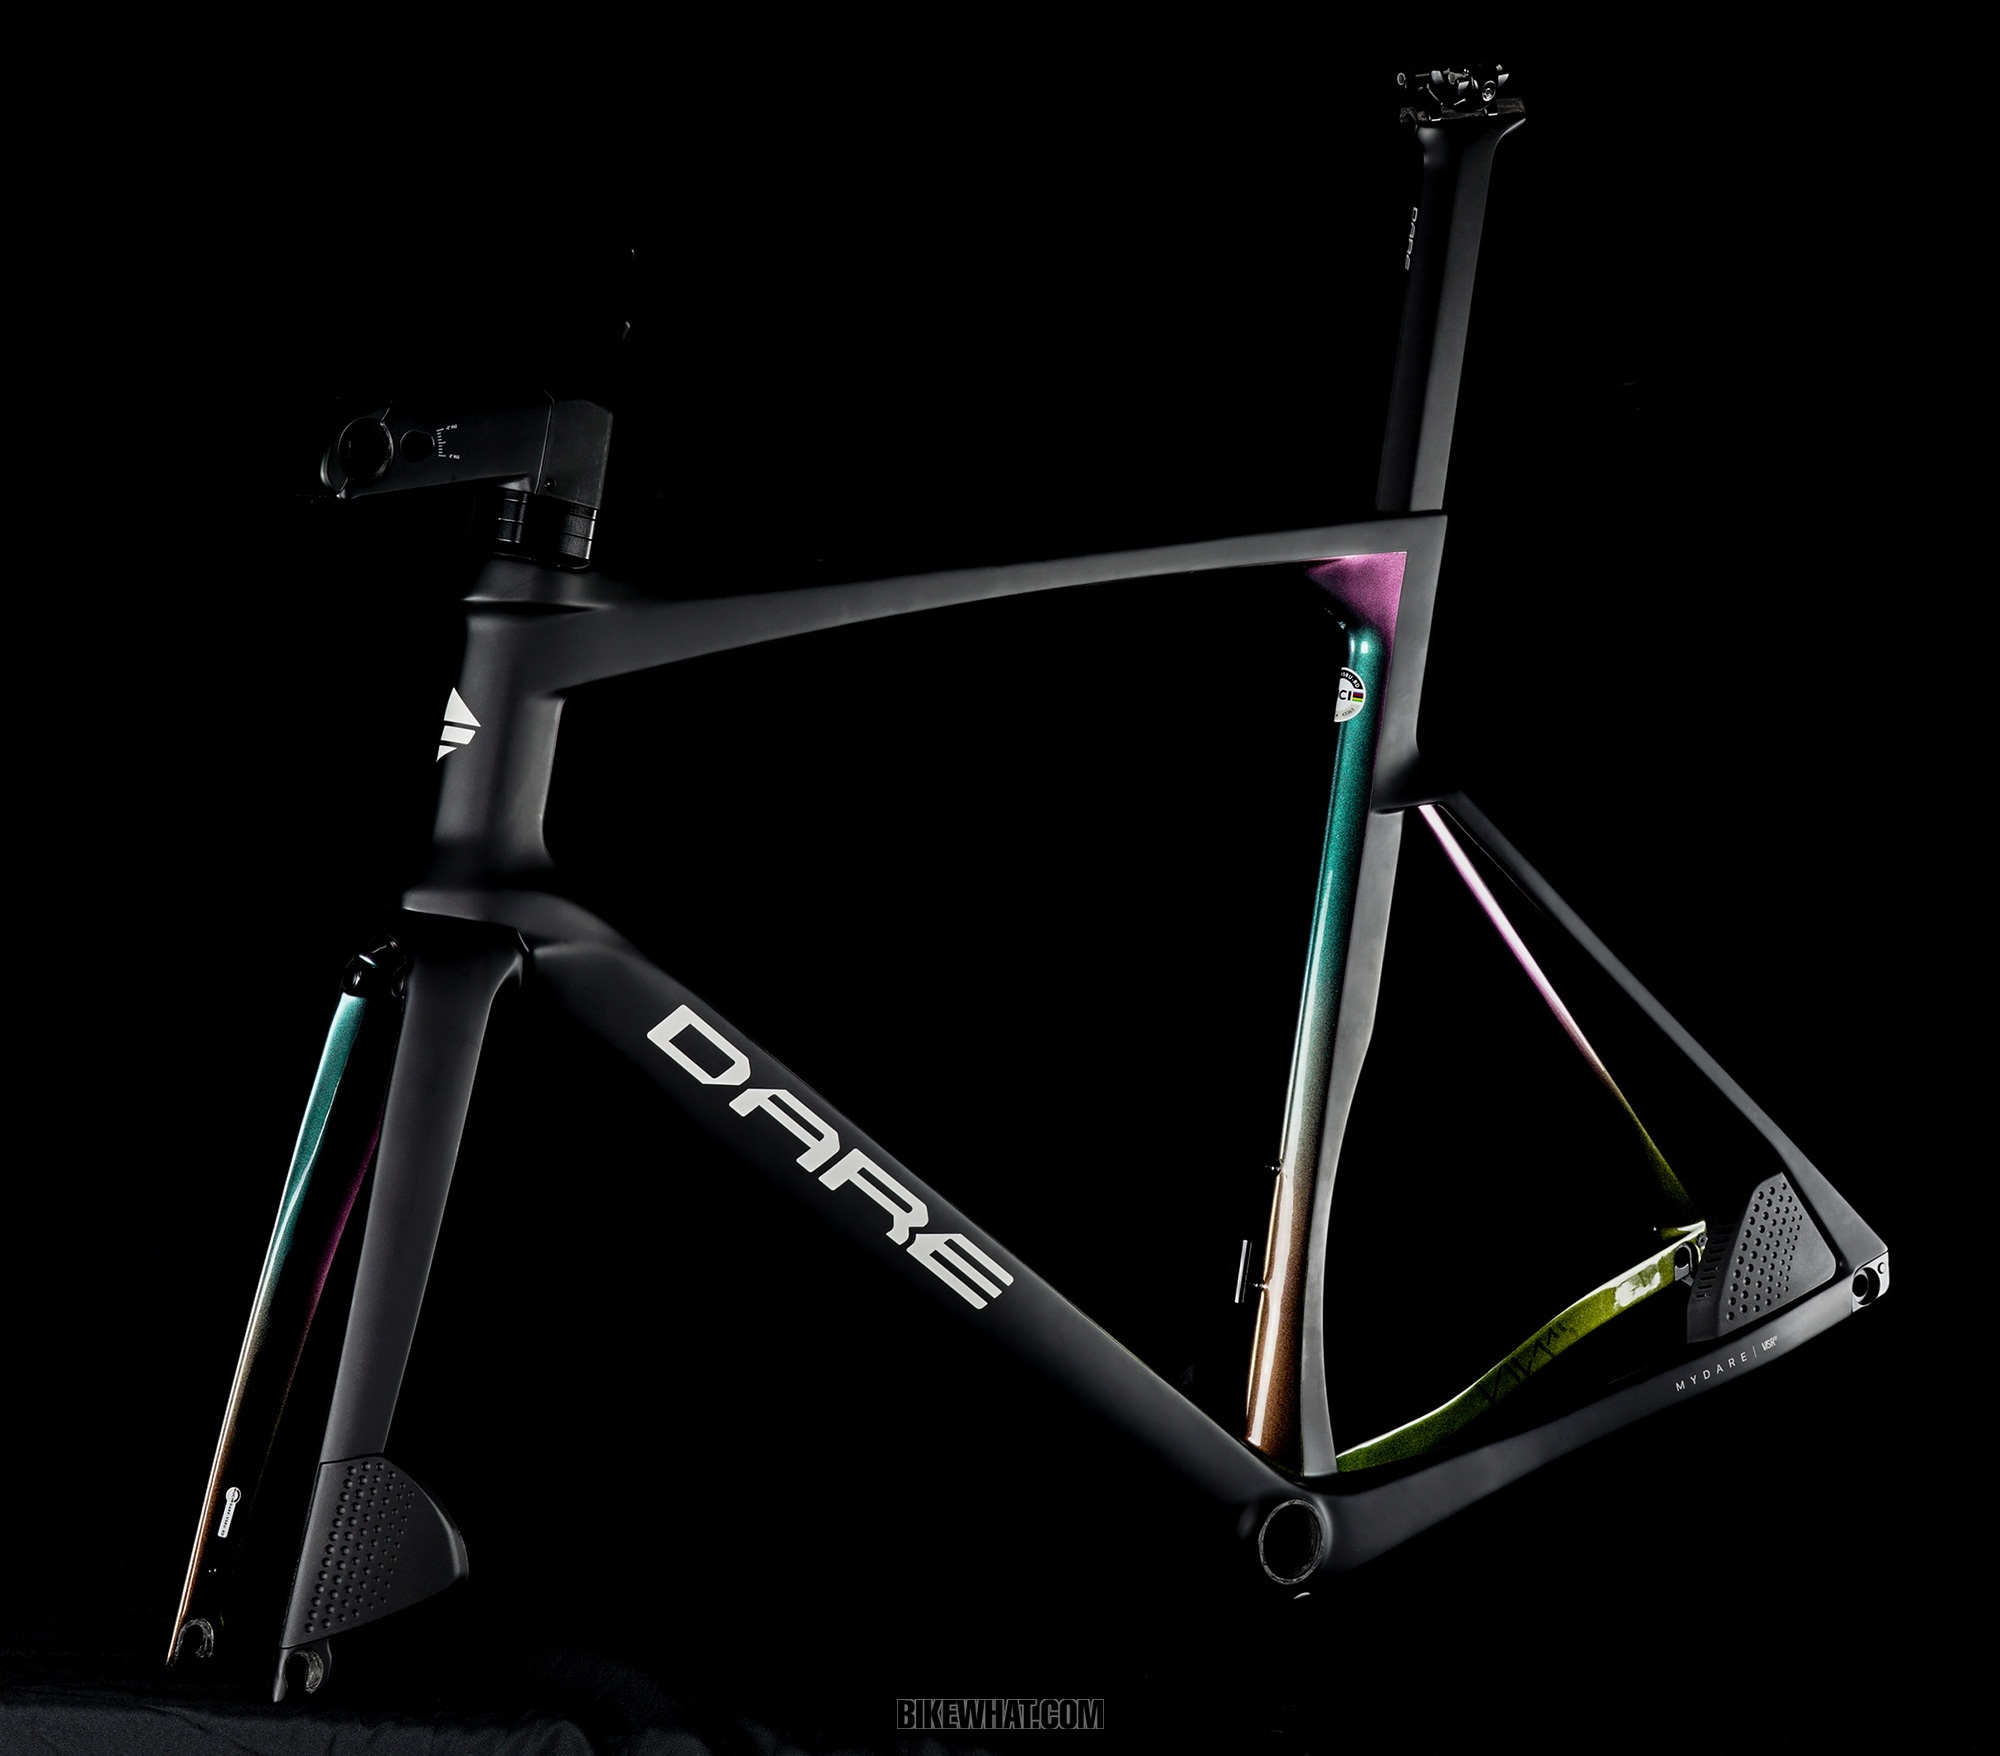 Gear_DARE_VSRu-Bornite-Black-frameset-.jpg